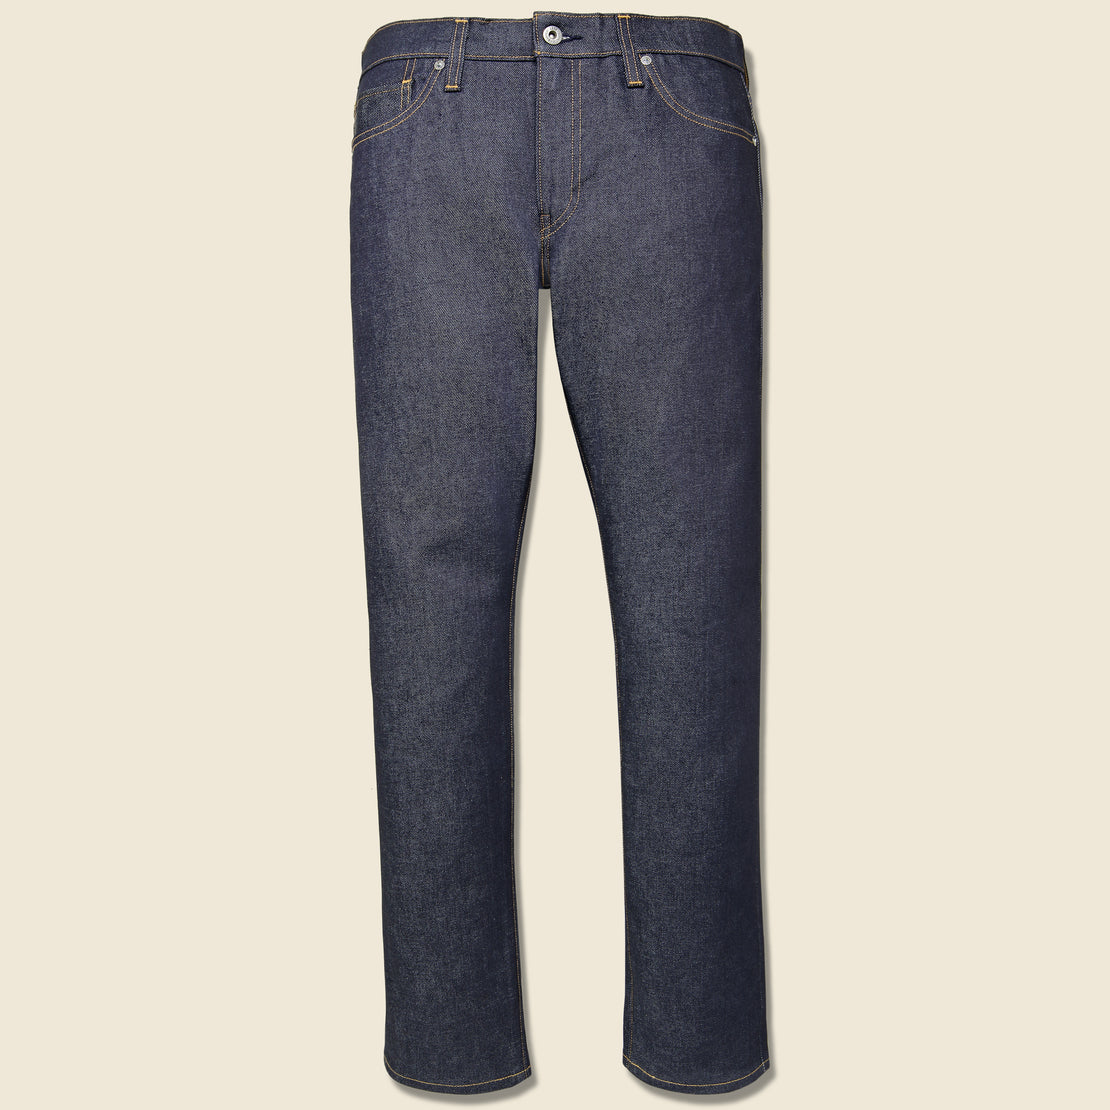 Levis Made & Crafted 511 Slim Fit Jean - Crisp